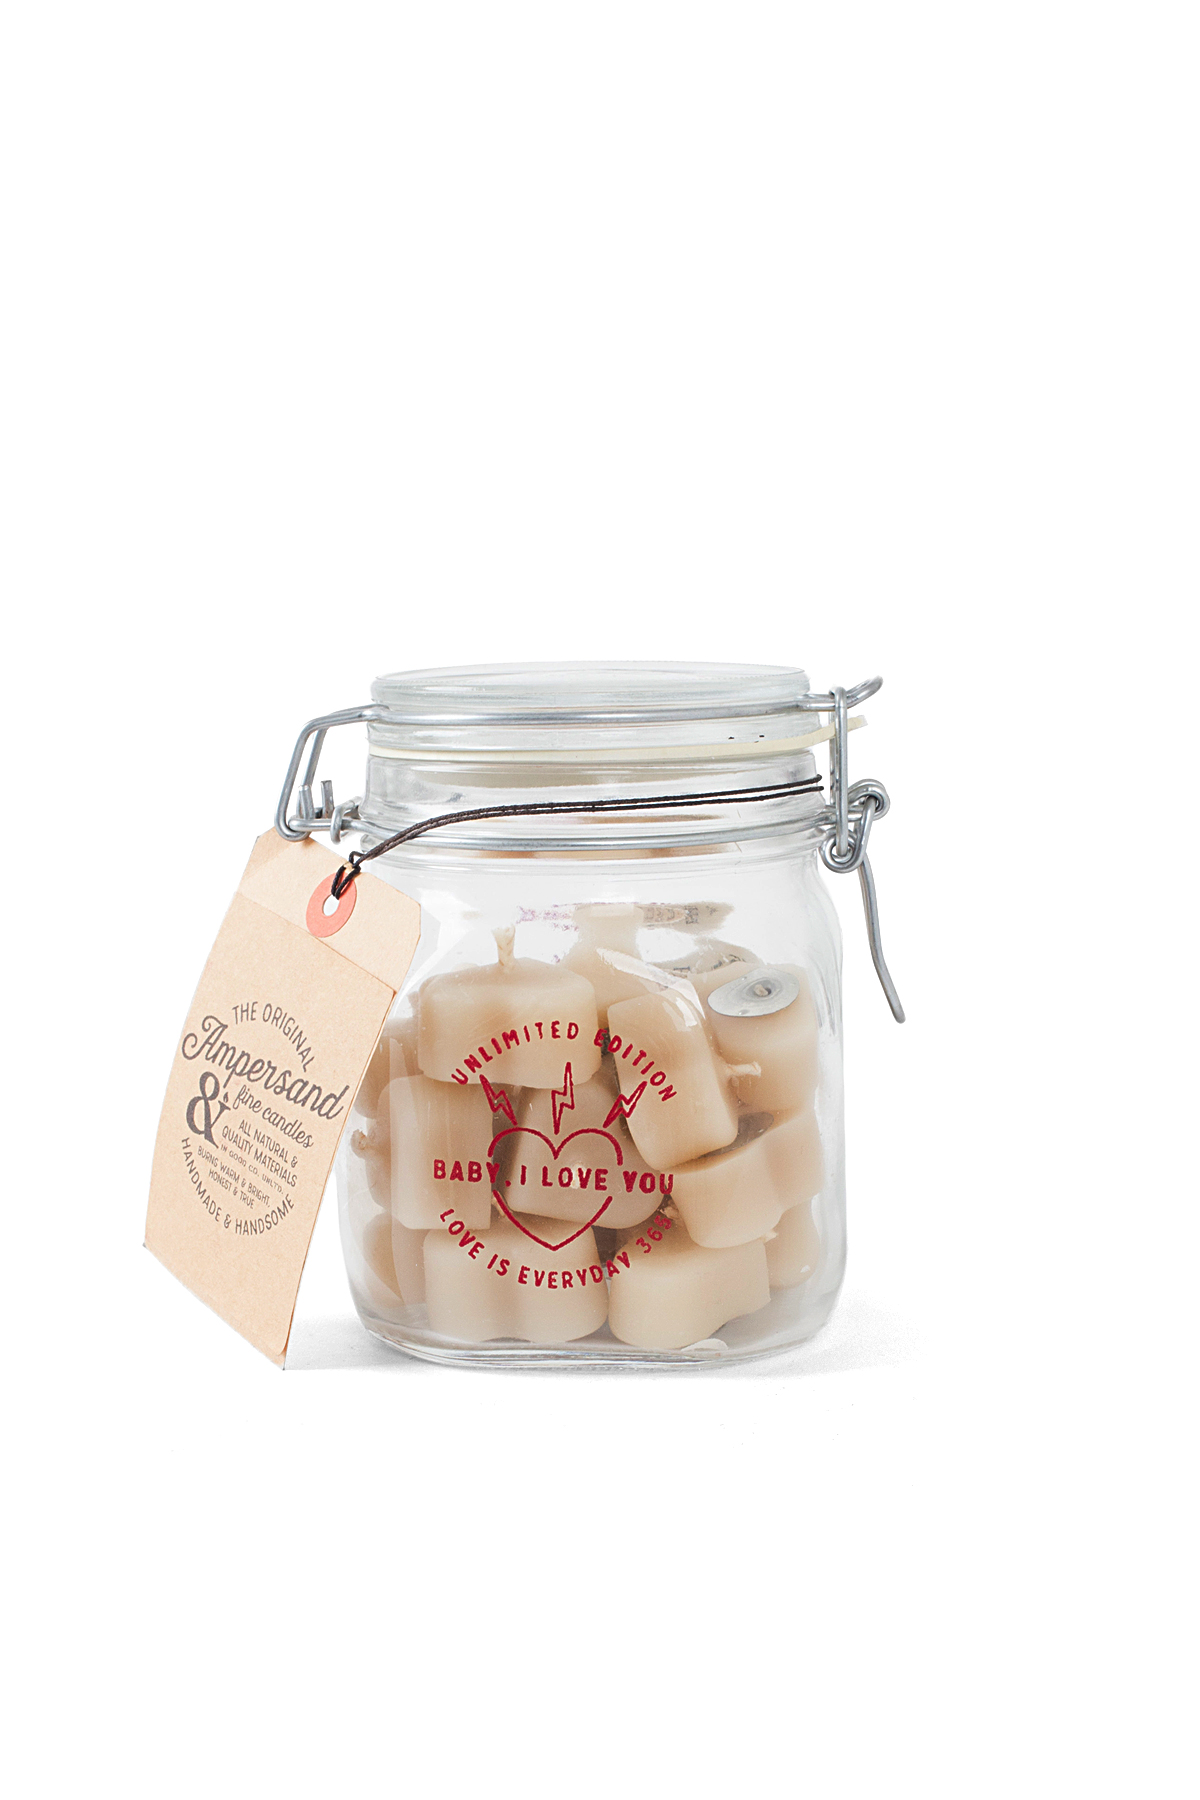 Ampersand Fine Candles : Baby I Love You Jar (24piece)